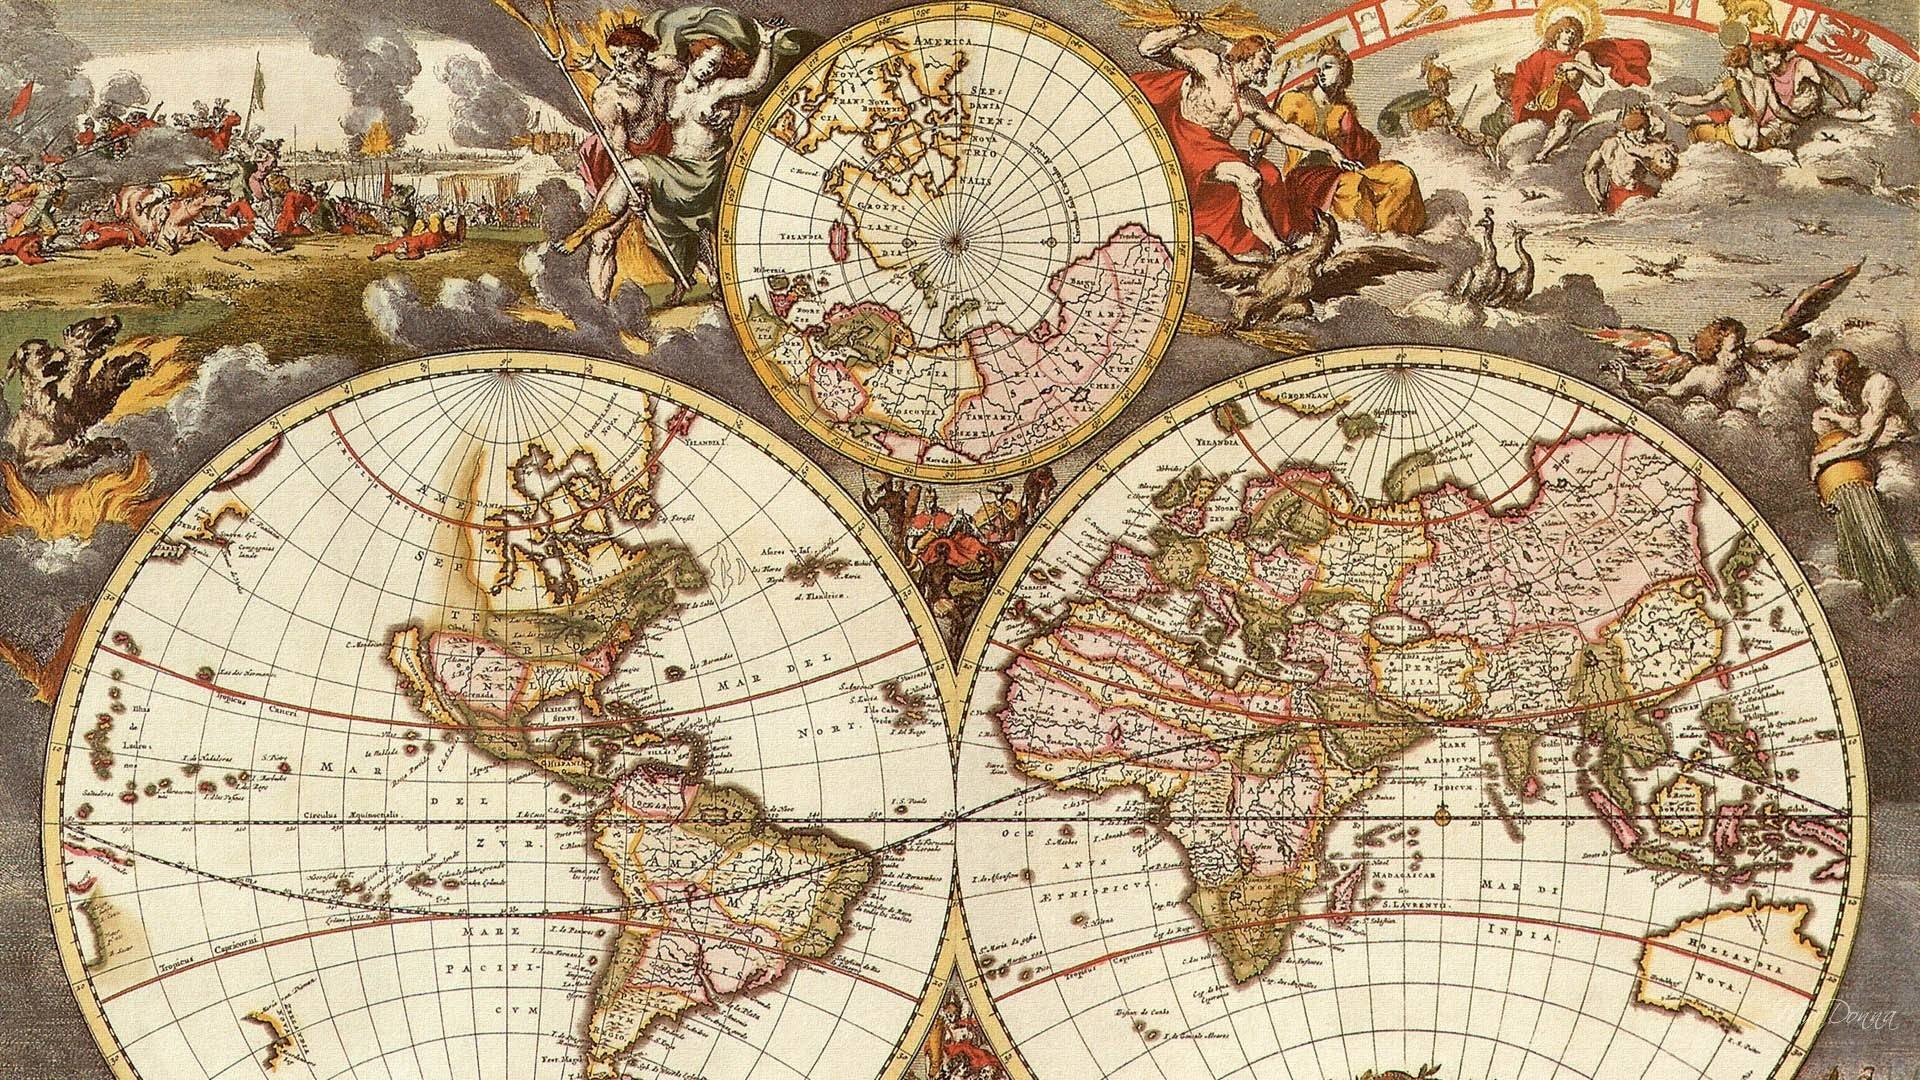 World map screensaver wallpaper 56 images 1920x1080 images for vintage world map background gumiabroncs Choice Image